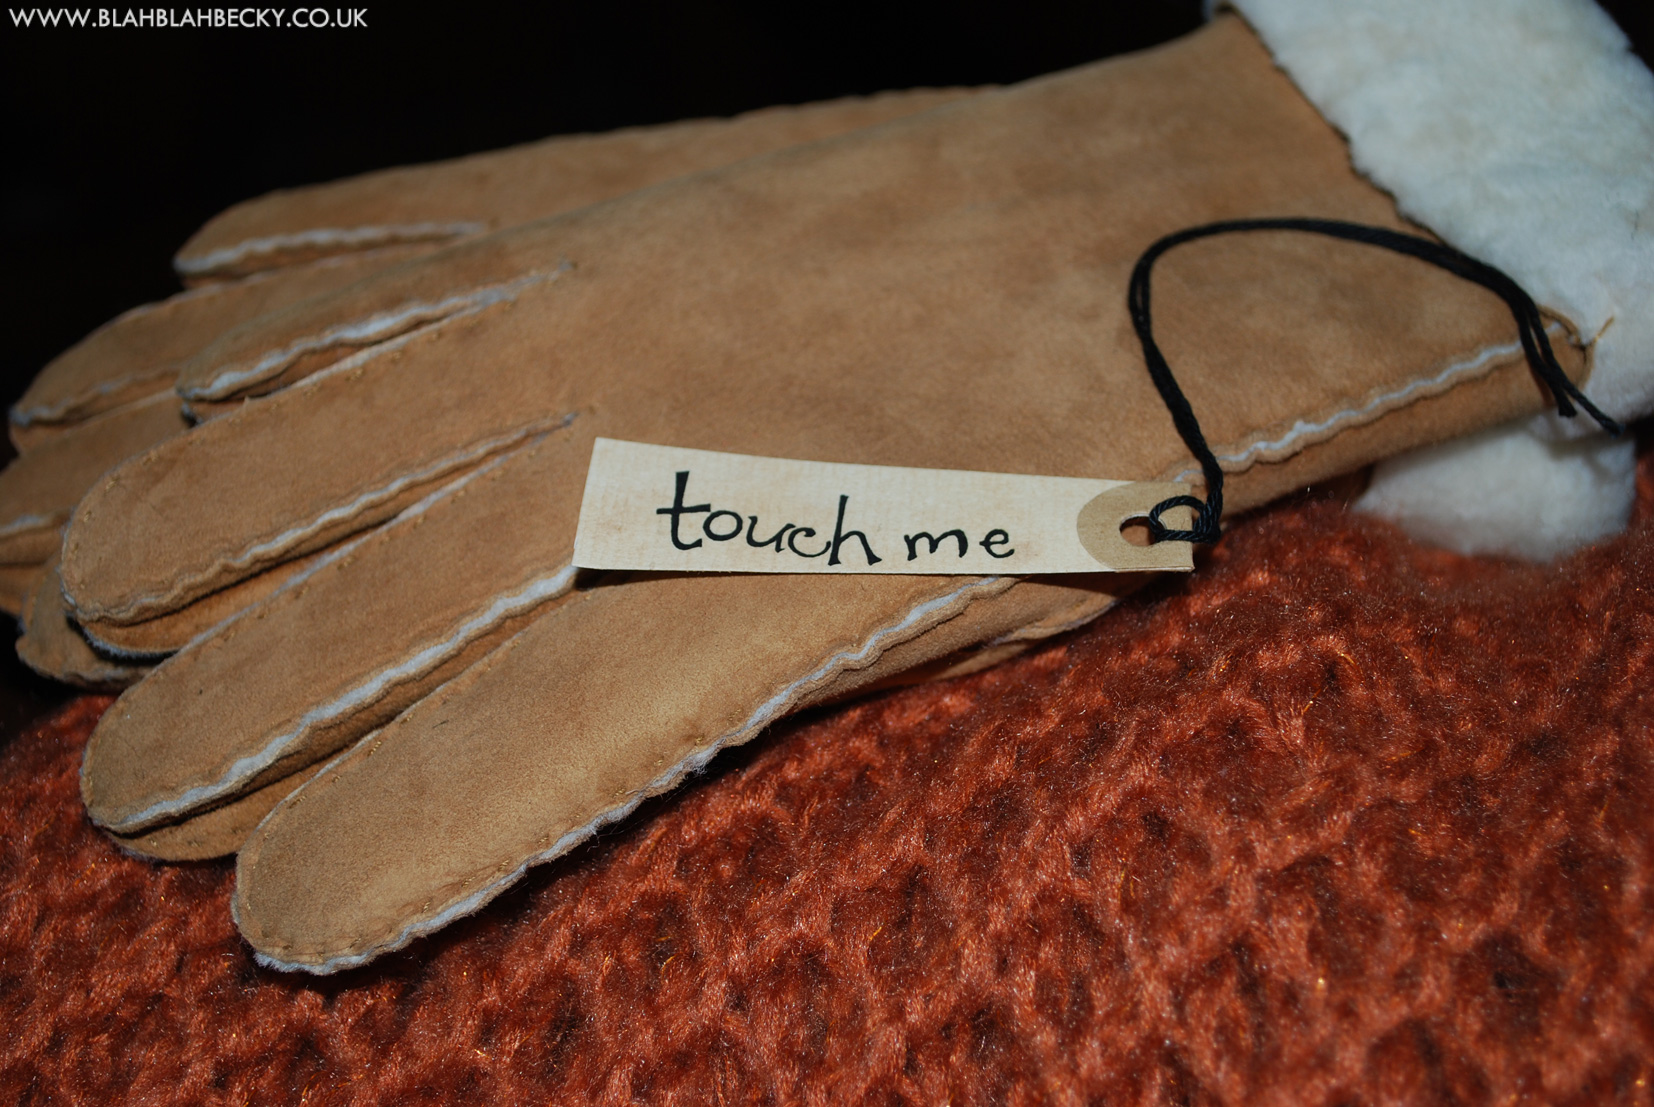 Sheepskin Gloves touch me label